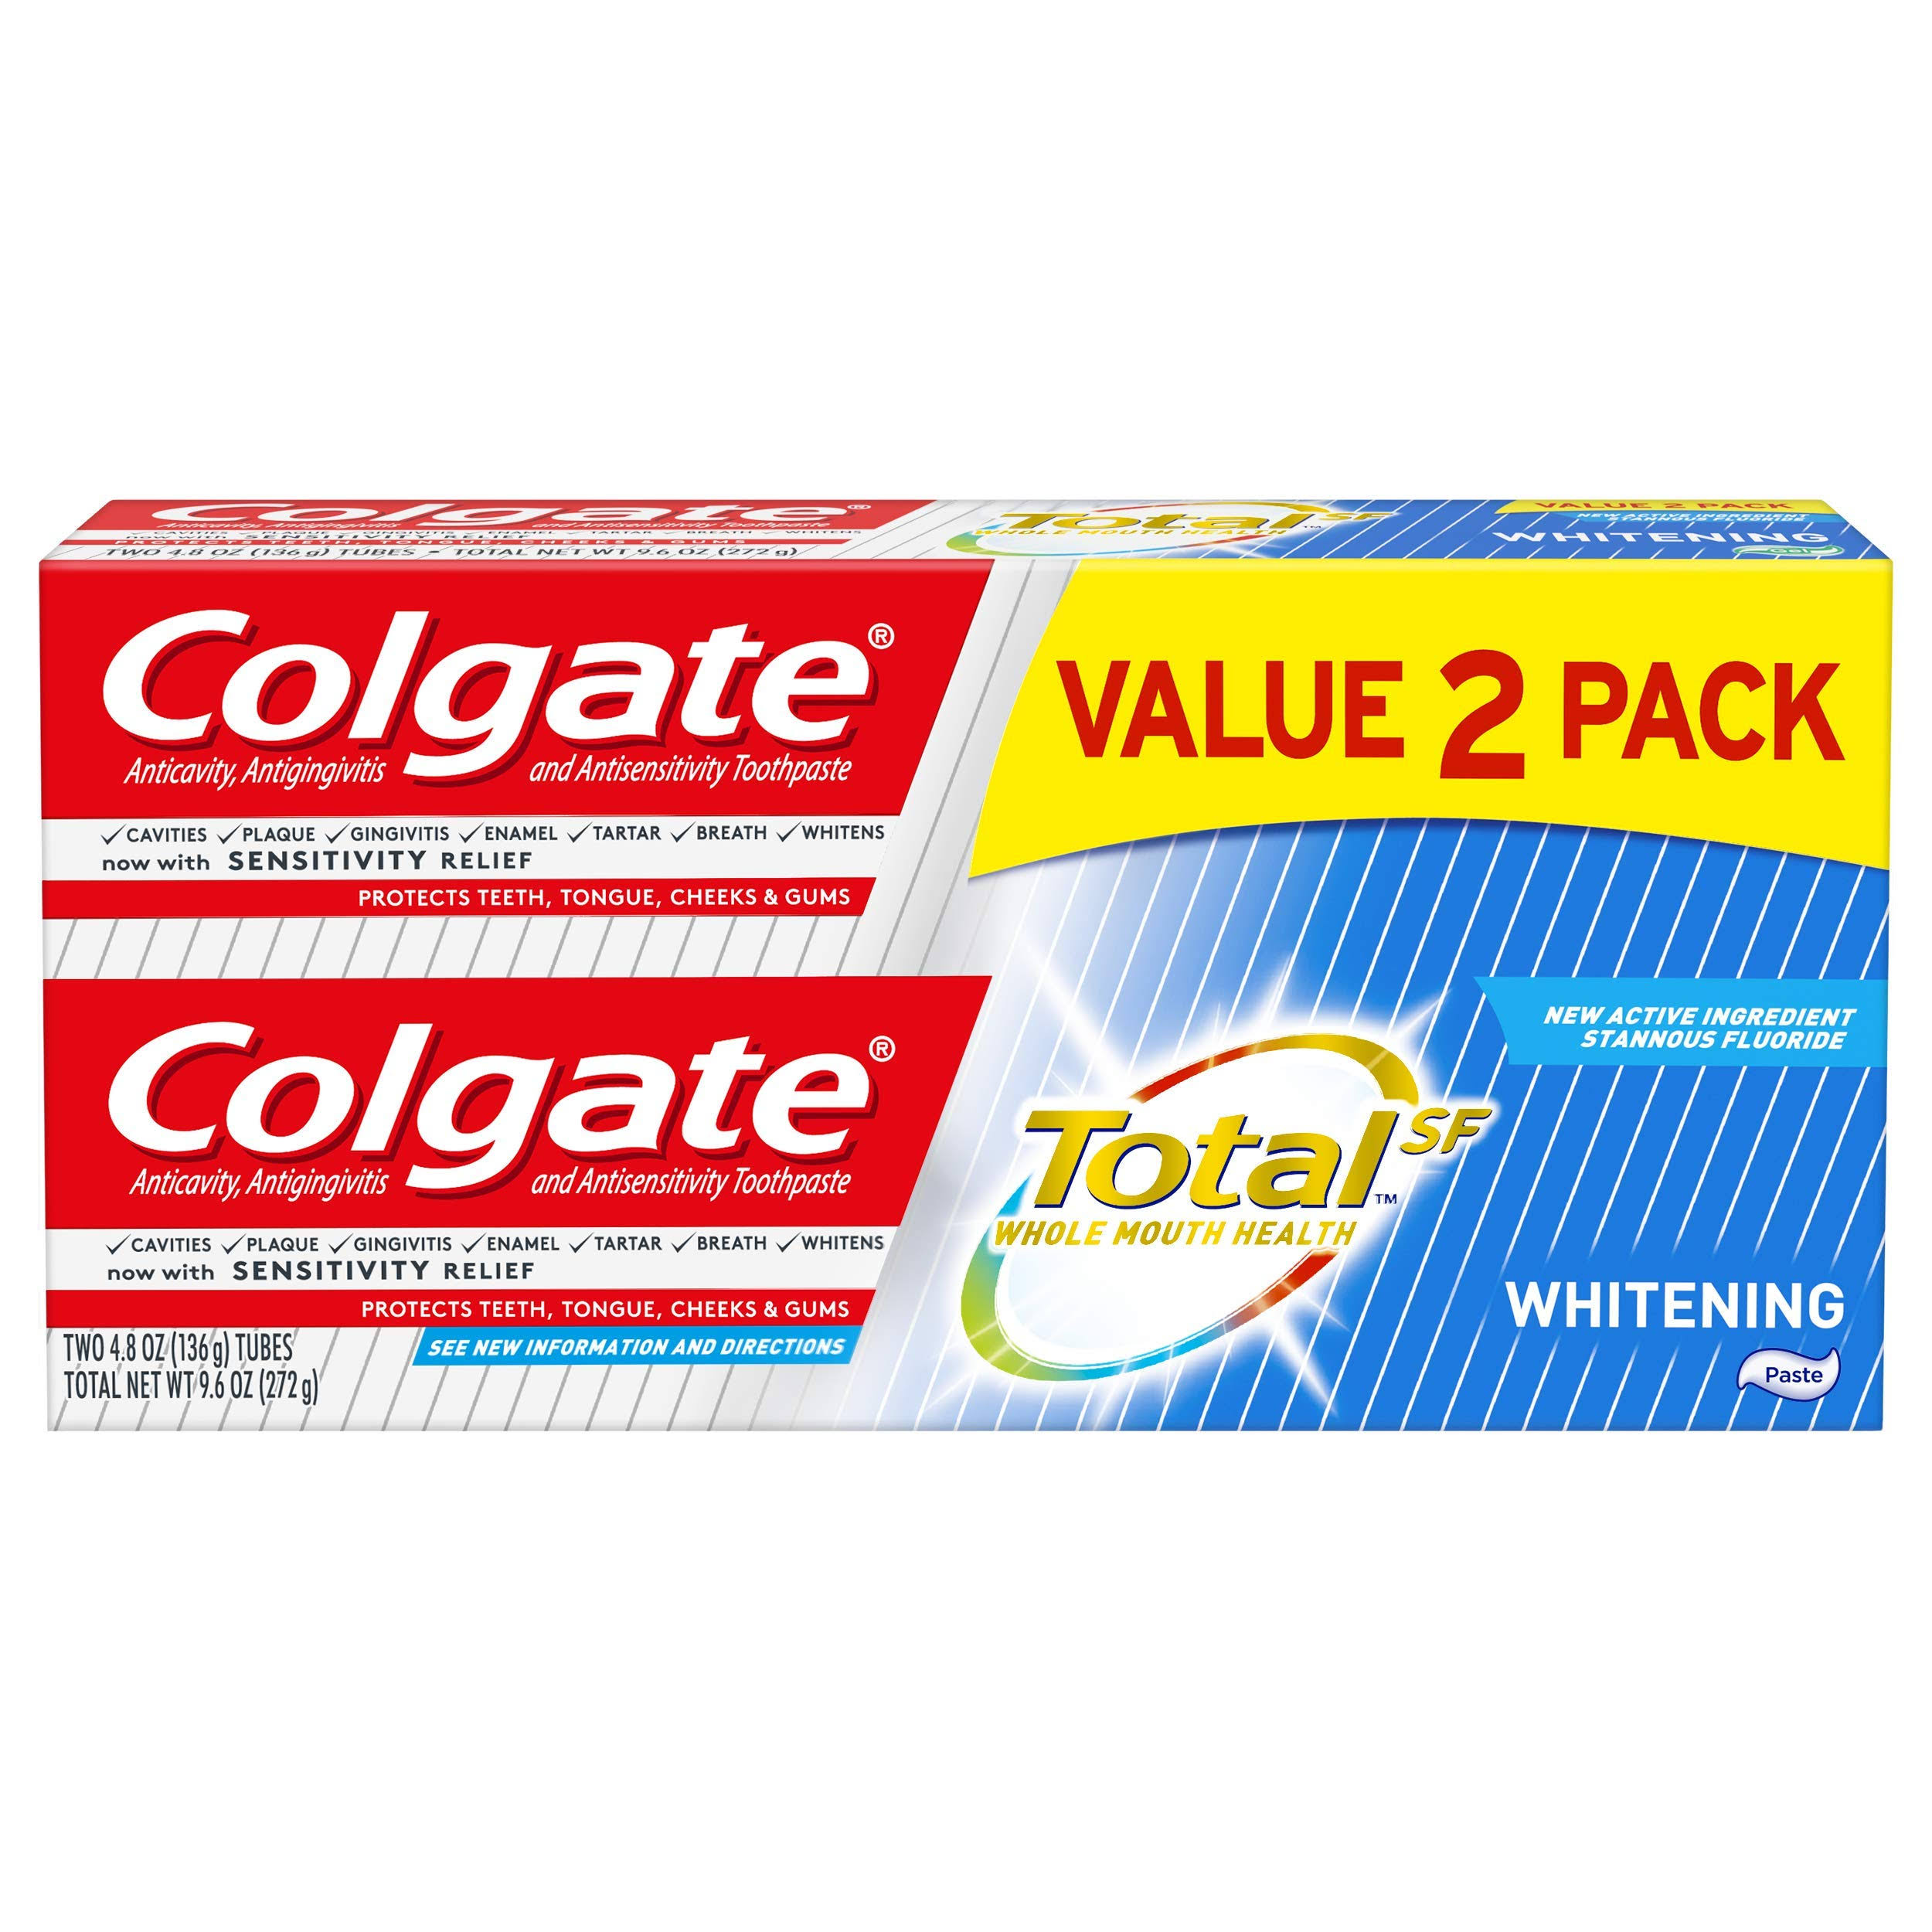 Colgate Total SF Toothpaste, Anticavity, Antigingivitis and Antisensitivity, Whitening, Value 2 Pack - two – 4.8 oz (136 g) tubes [9.6 oz (272 g)]